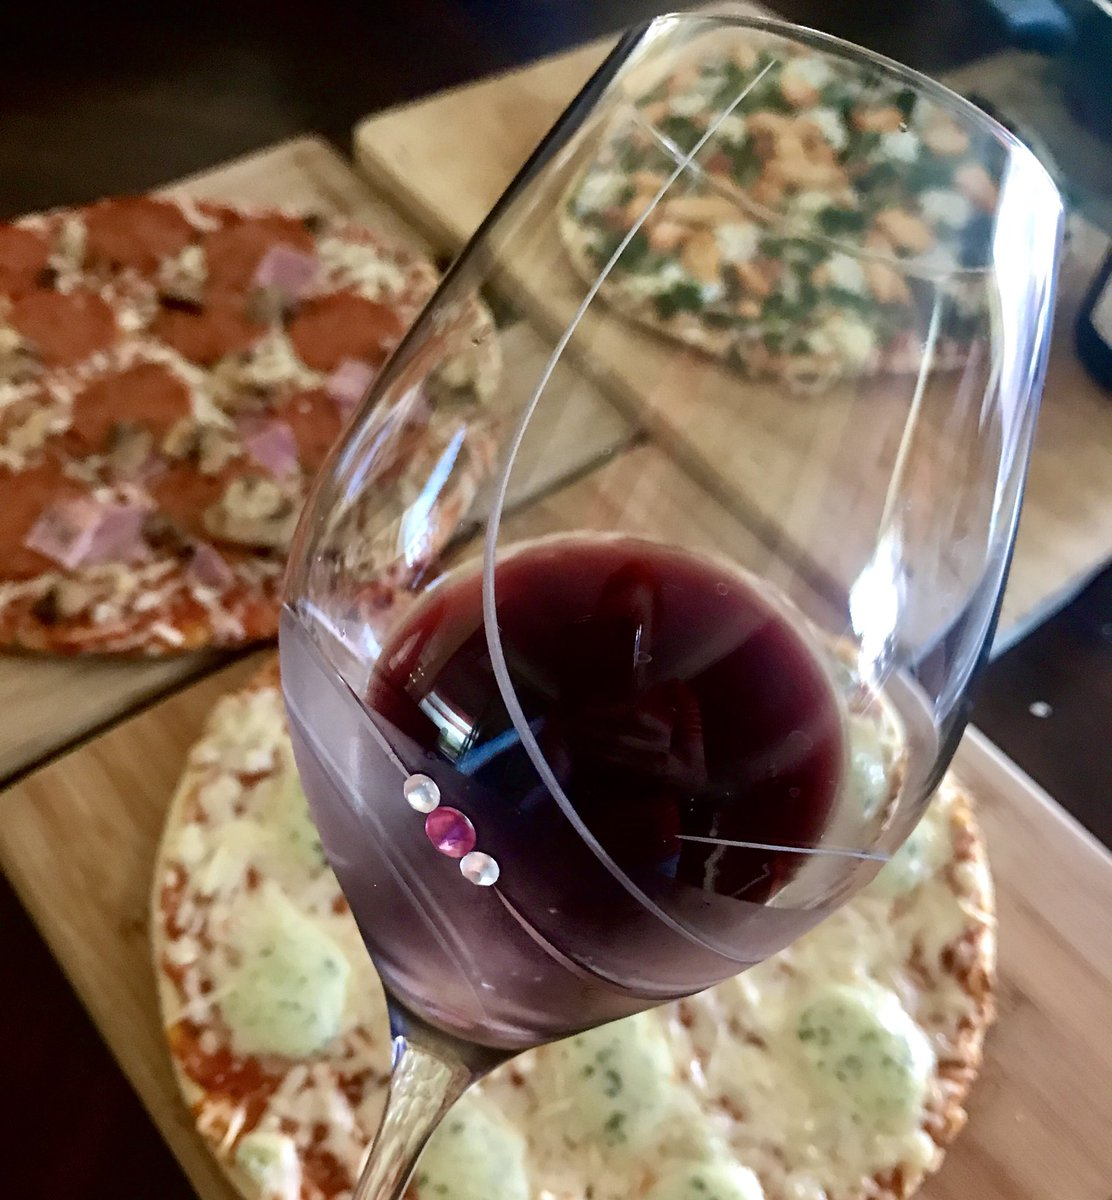 When pizza is served  #wine  must be poured... right?   #TuesdayThoughts   Happy Tuesday!!! <br>http://pic.twitter.com/dzOyyDxERu